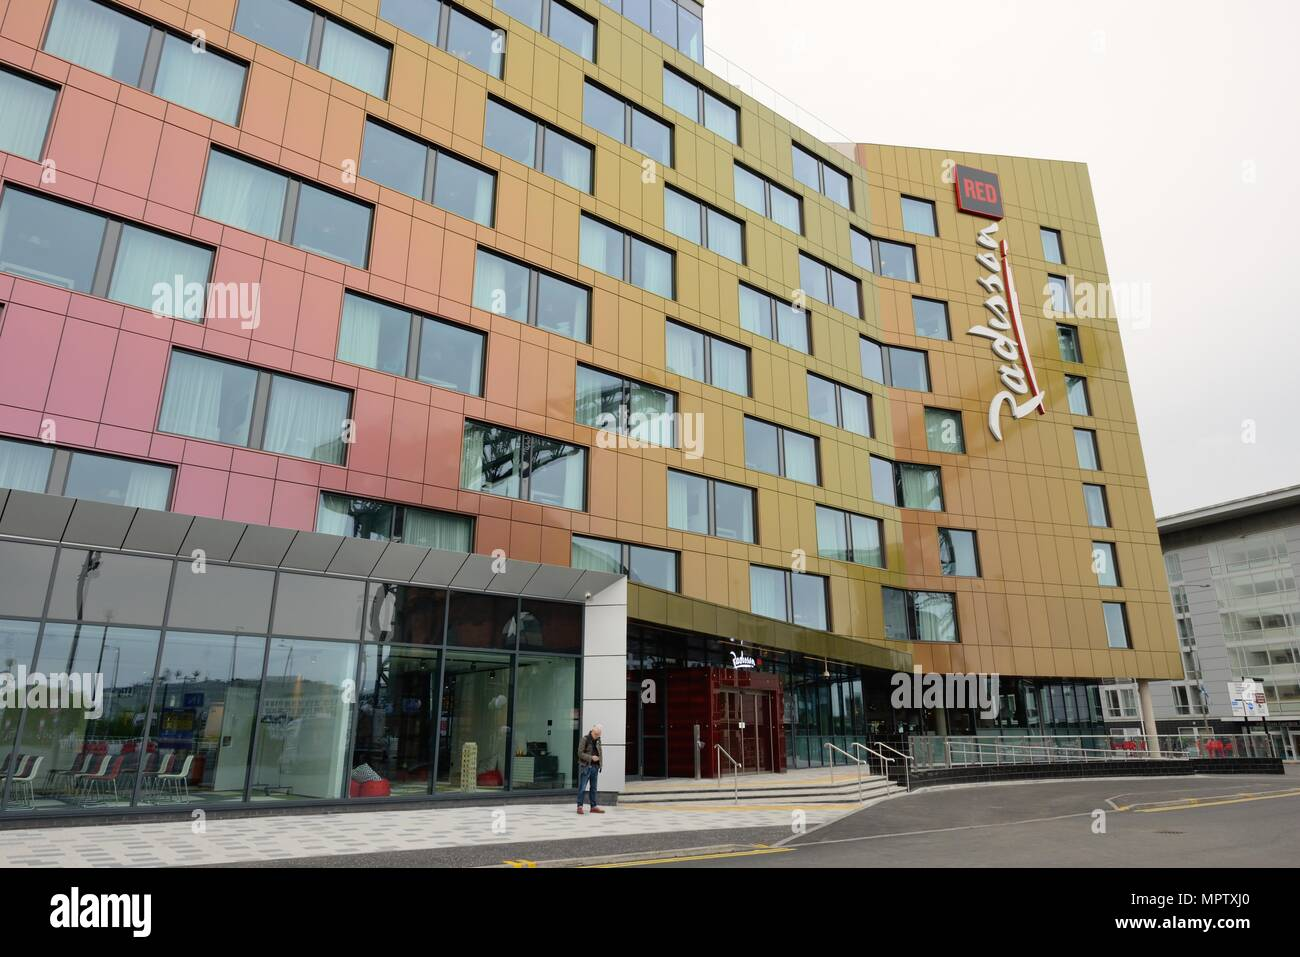 The newly opened Radisson Red hotel with unique changing colour frontage, in Finnieston, Glasgow, Scotland, UK - Stock Image